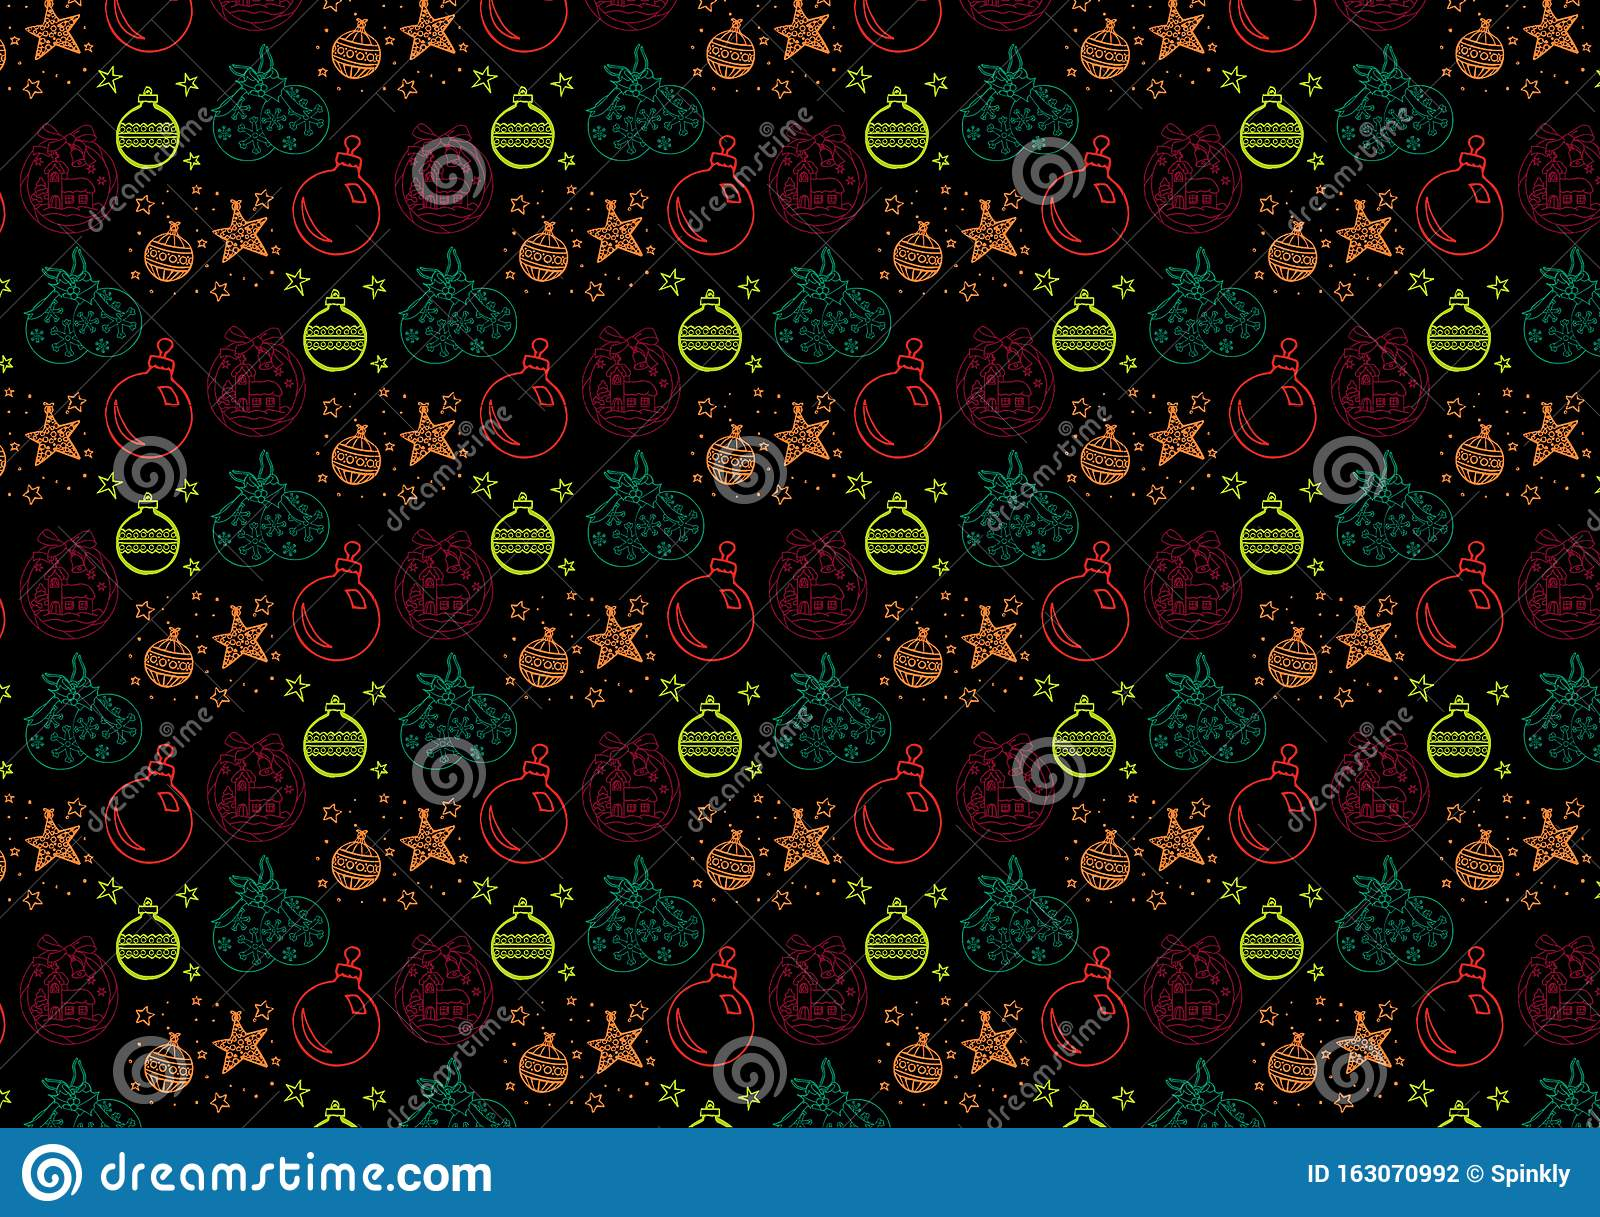 Christmas ornaments pattern wallpaper background